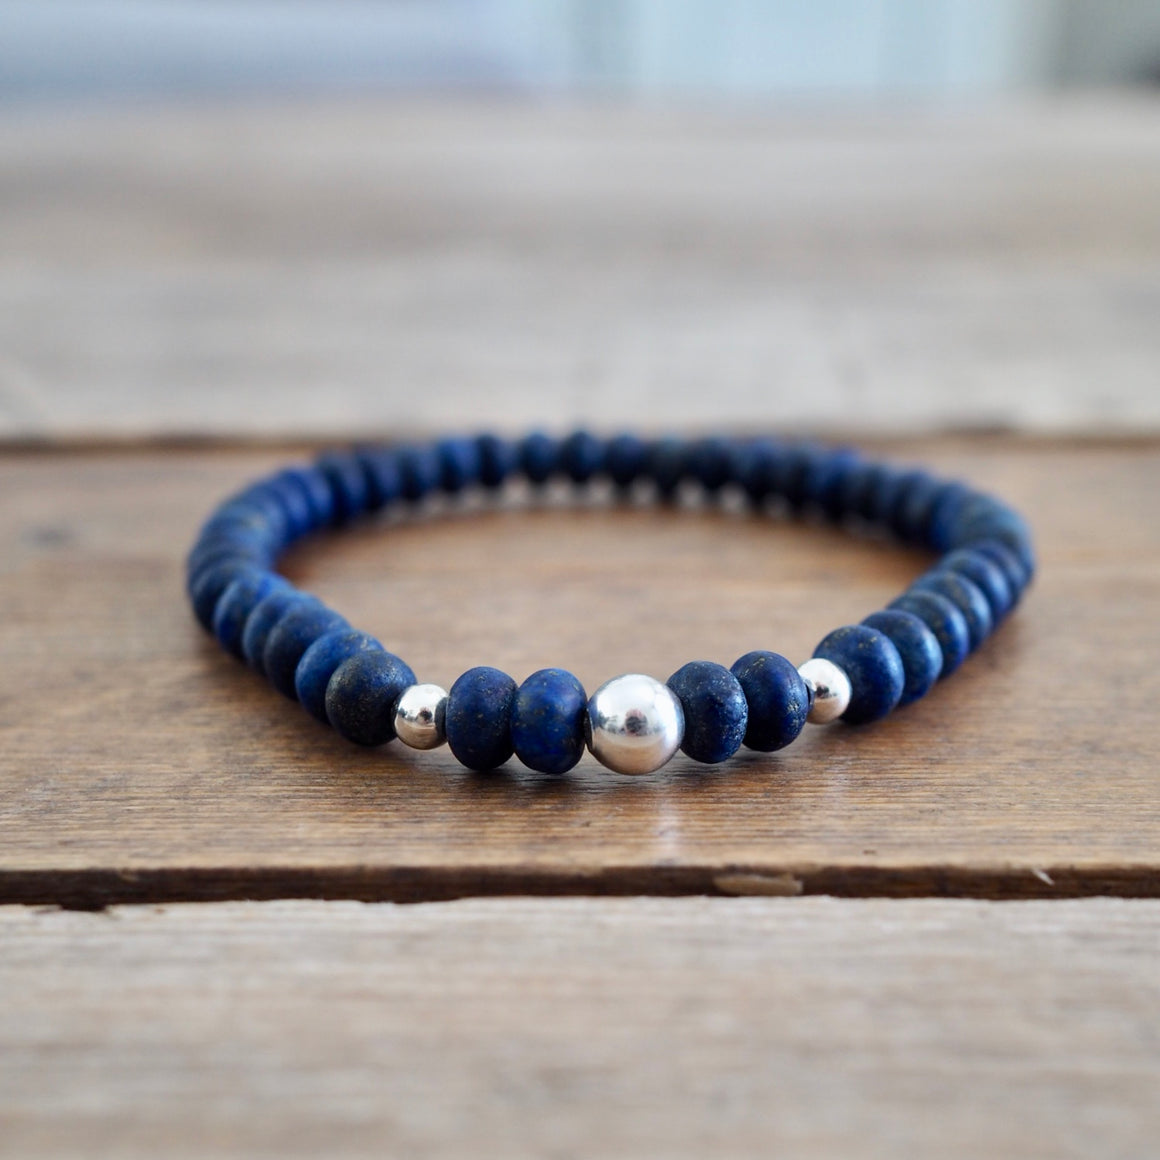 Lapis Lazuli Bracelet by Nancy Wallis Designs in Canada